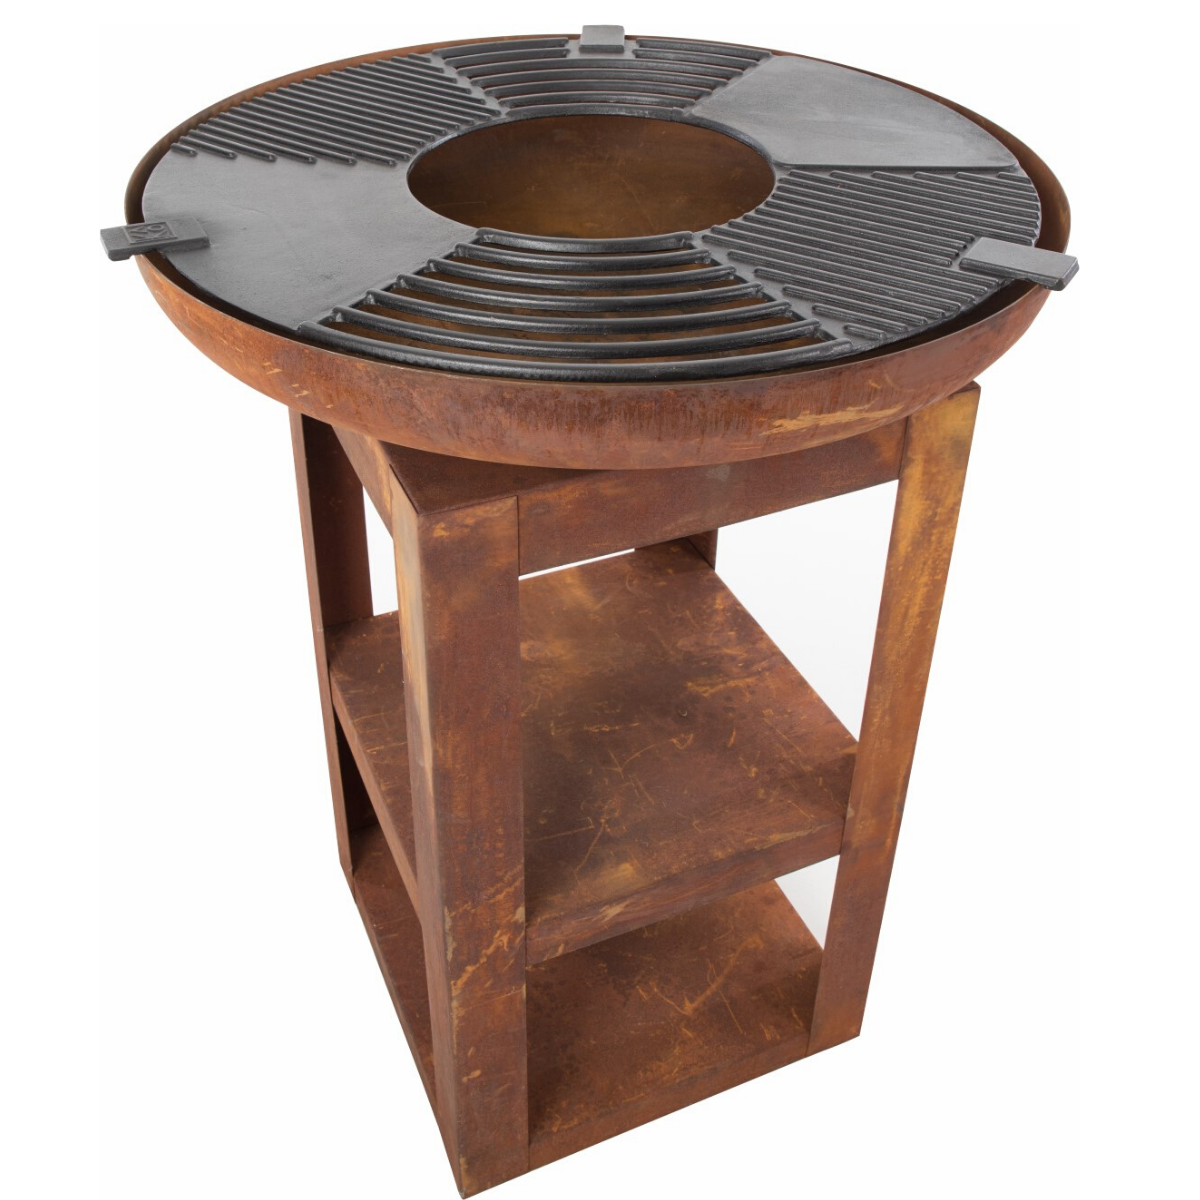 BrownRust Barbecue Fire Pit - Plancha